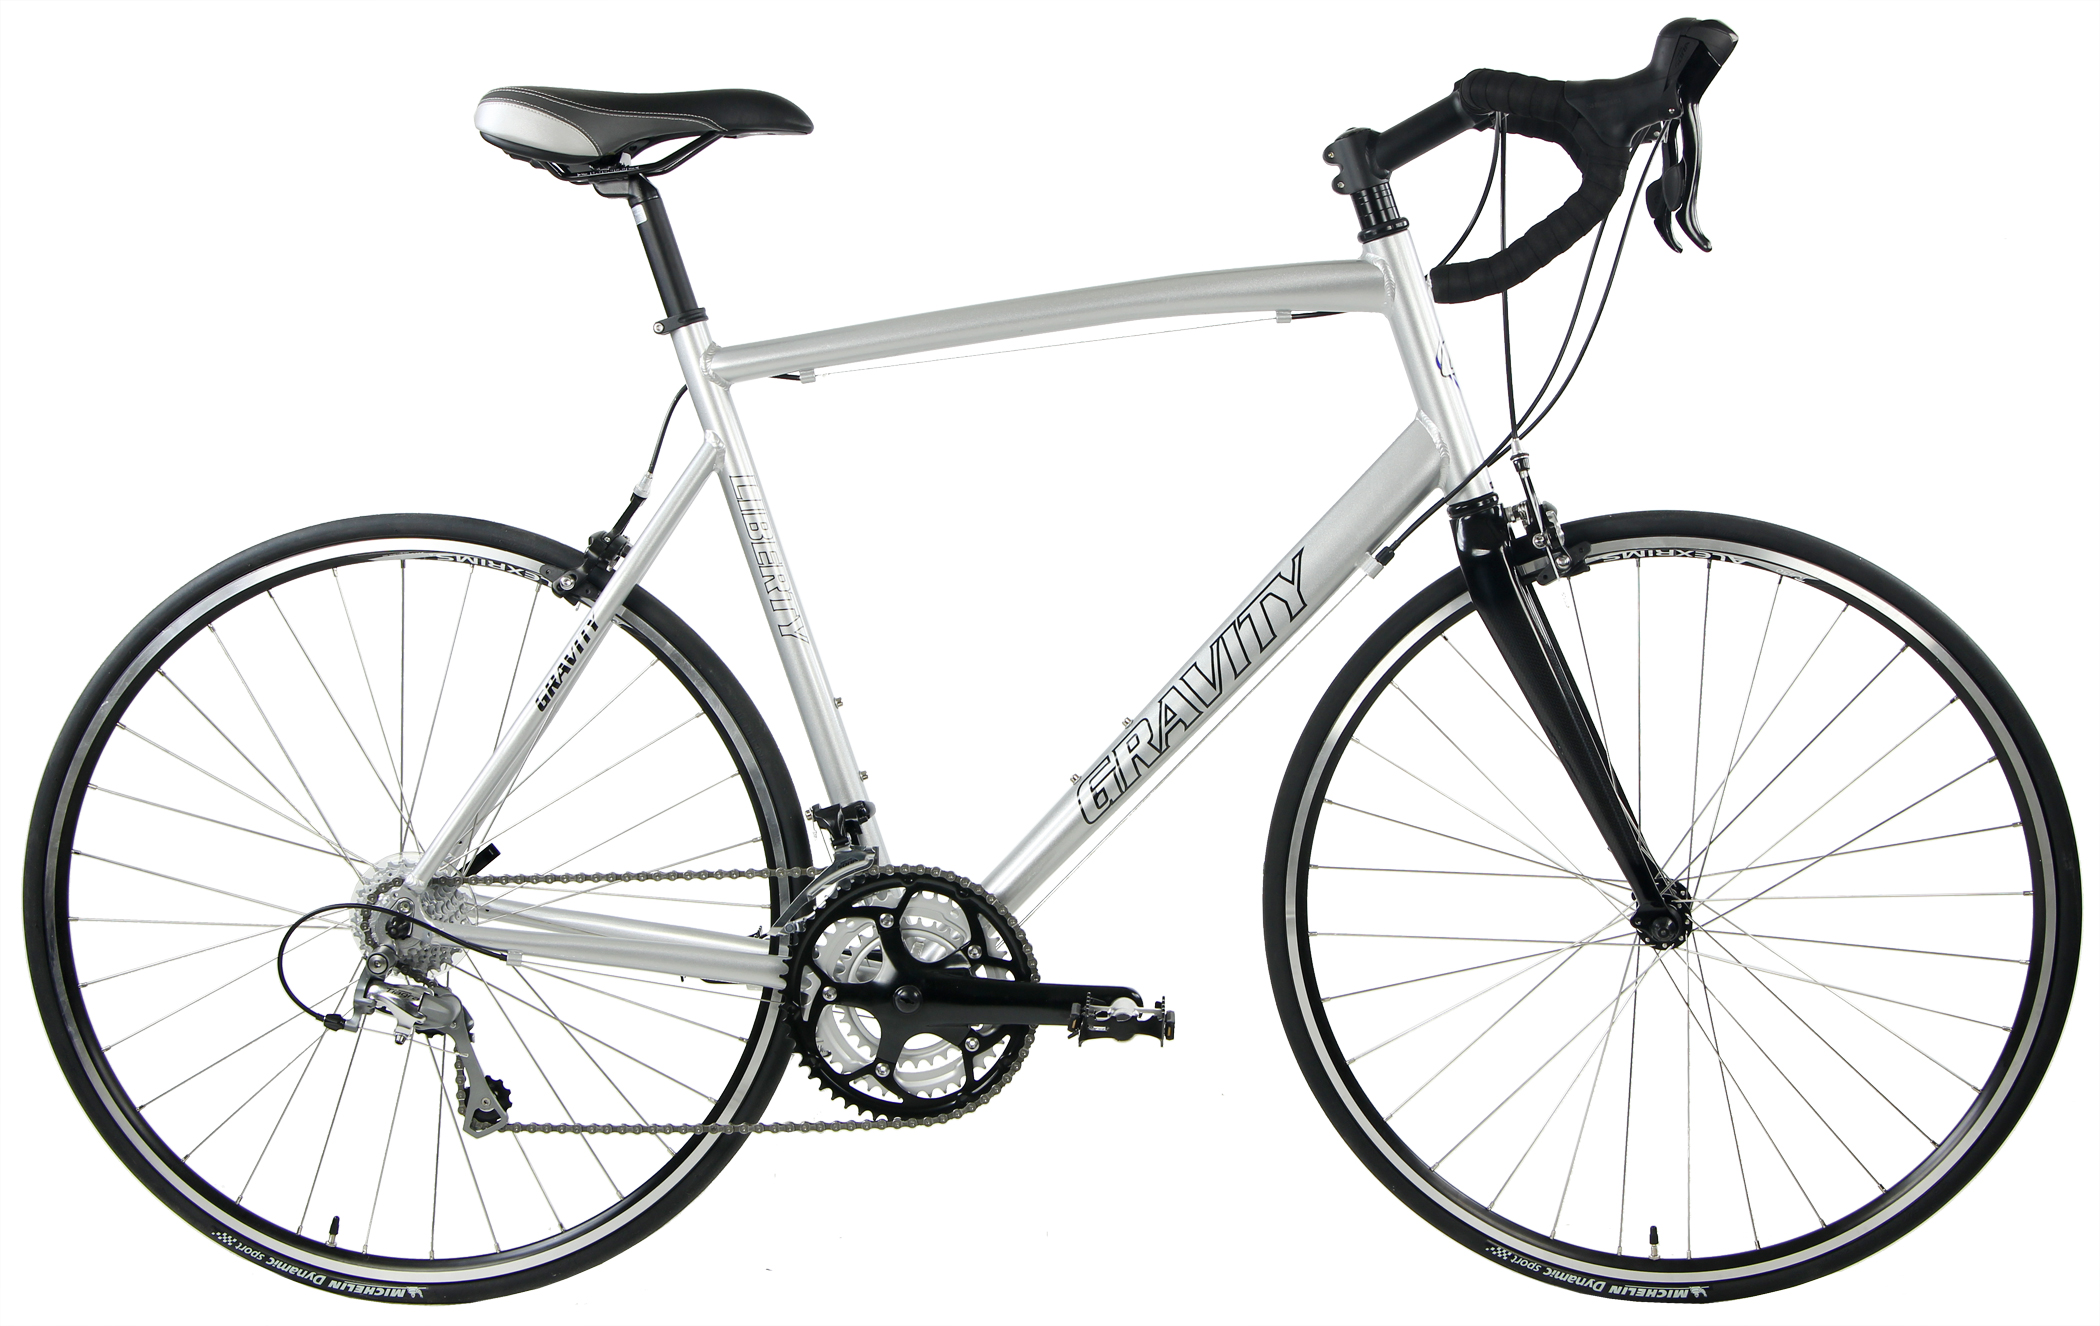 Bikes Gravity Liberty 2 Road Bike Sora / Carbon Fork Equipped Image